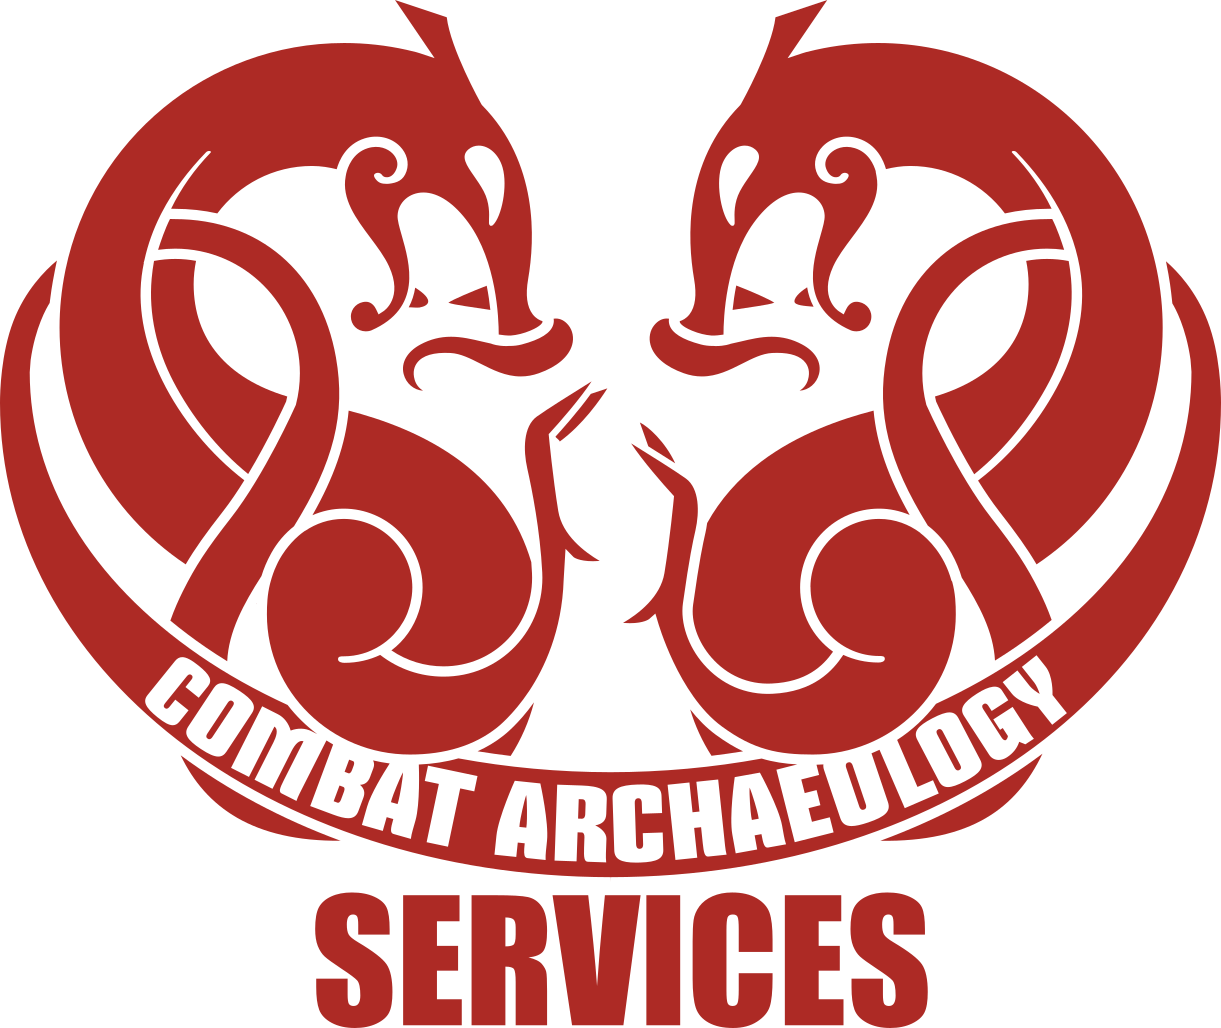 Professional clipart general public. Society for combat archaeology